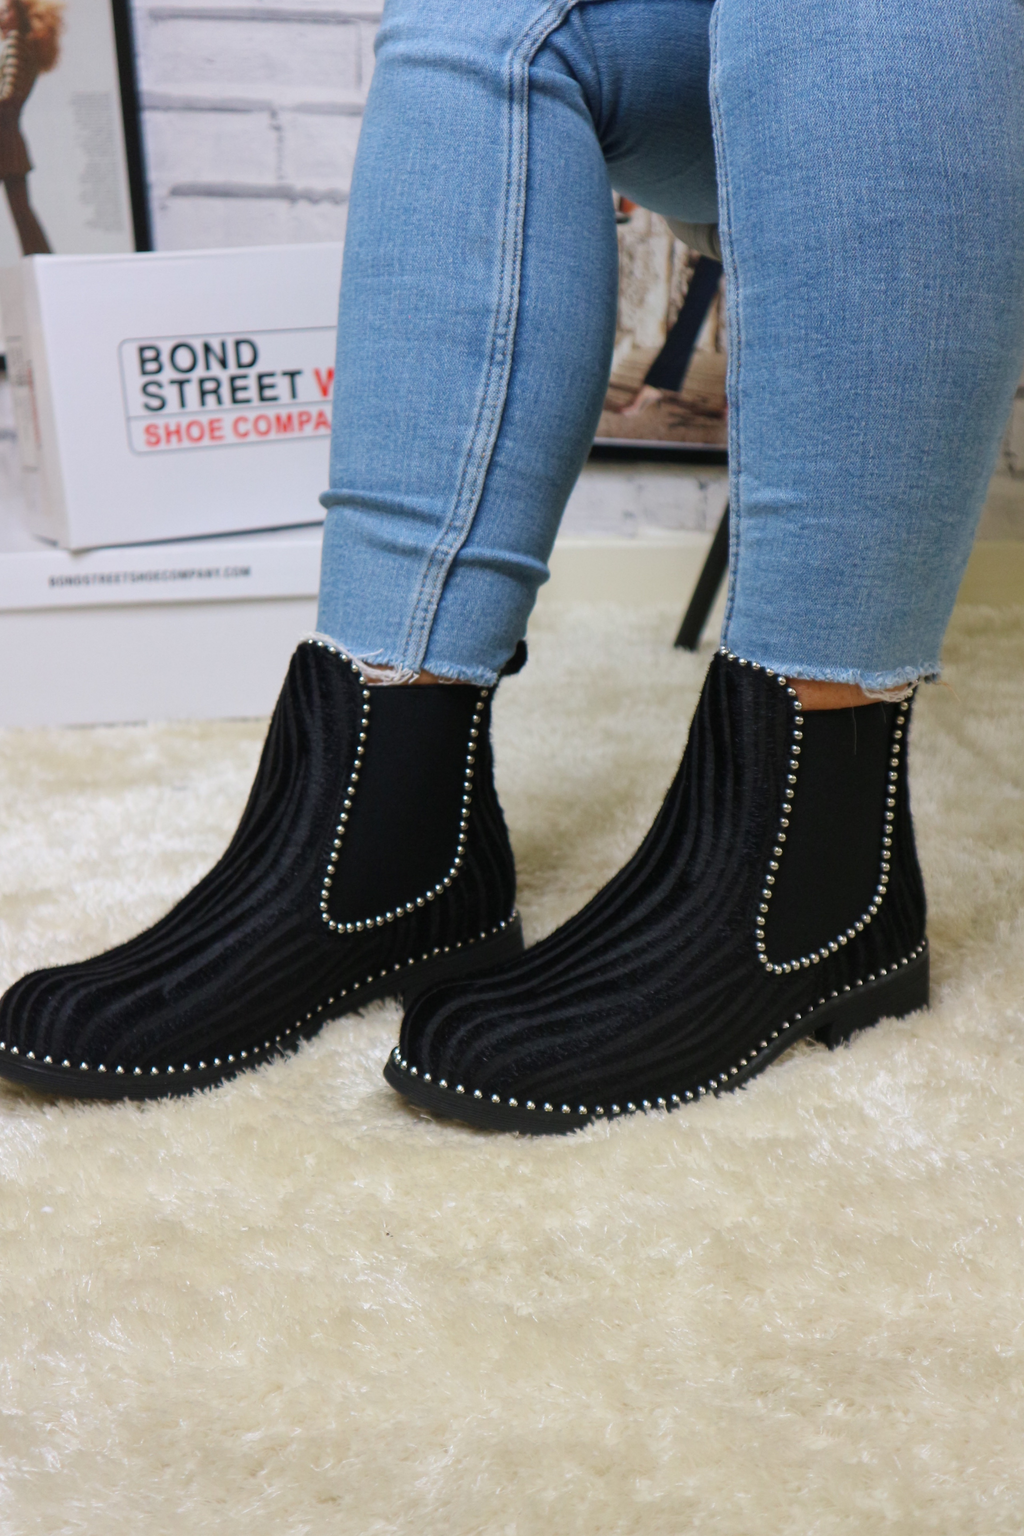 Zebra all black ankle boot